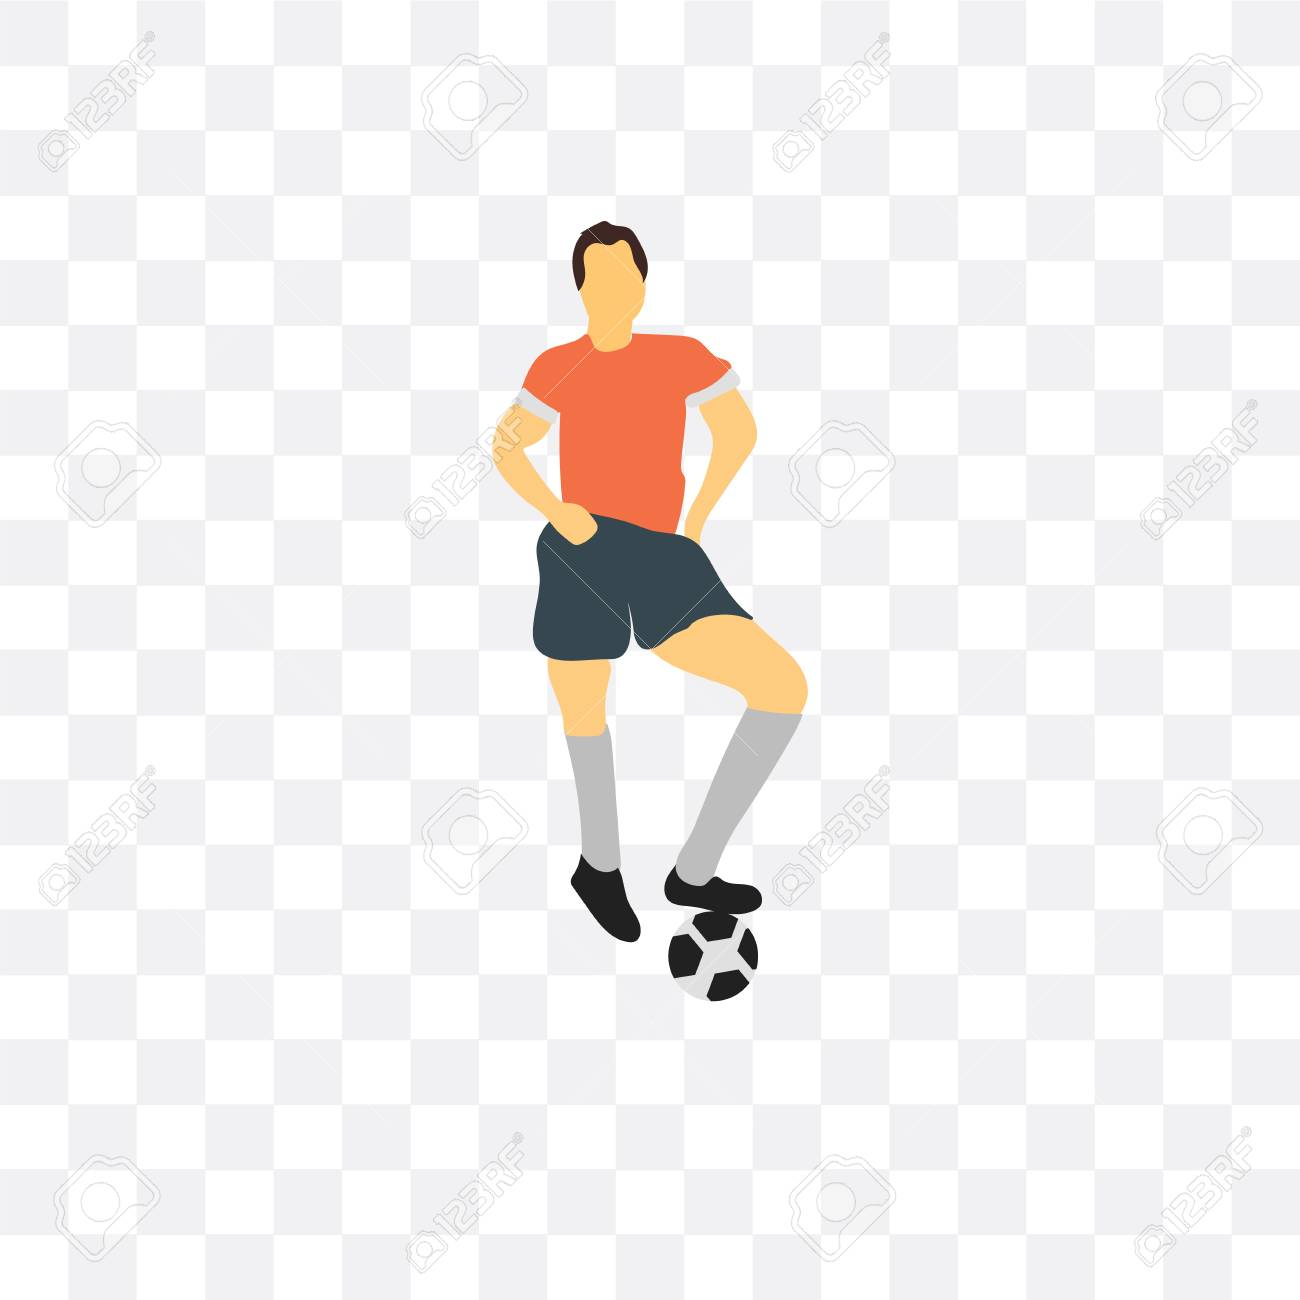 Football Player Vector Icon Isolated On Transparent Background